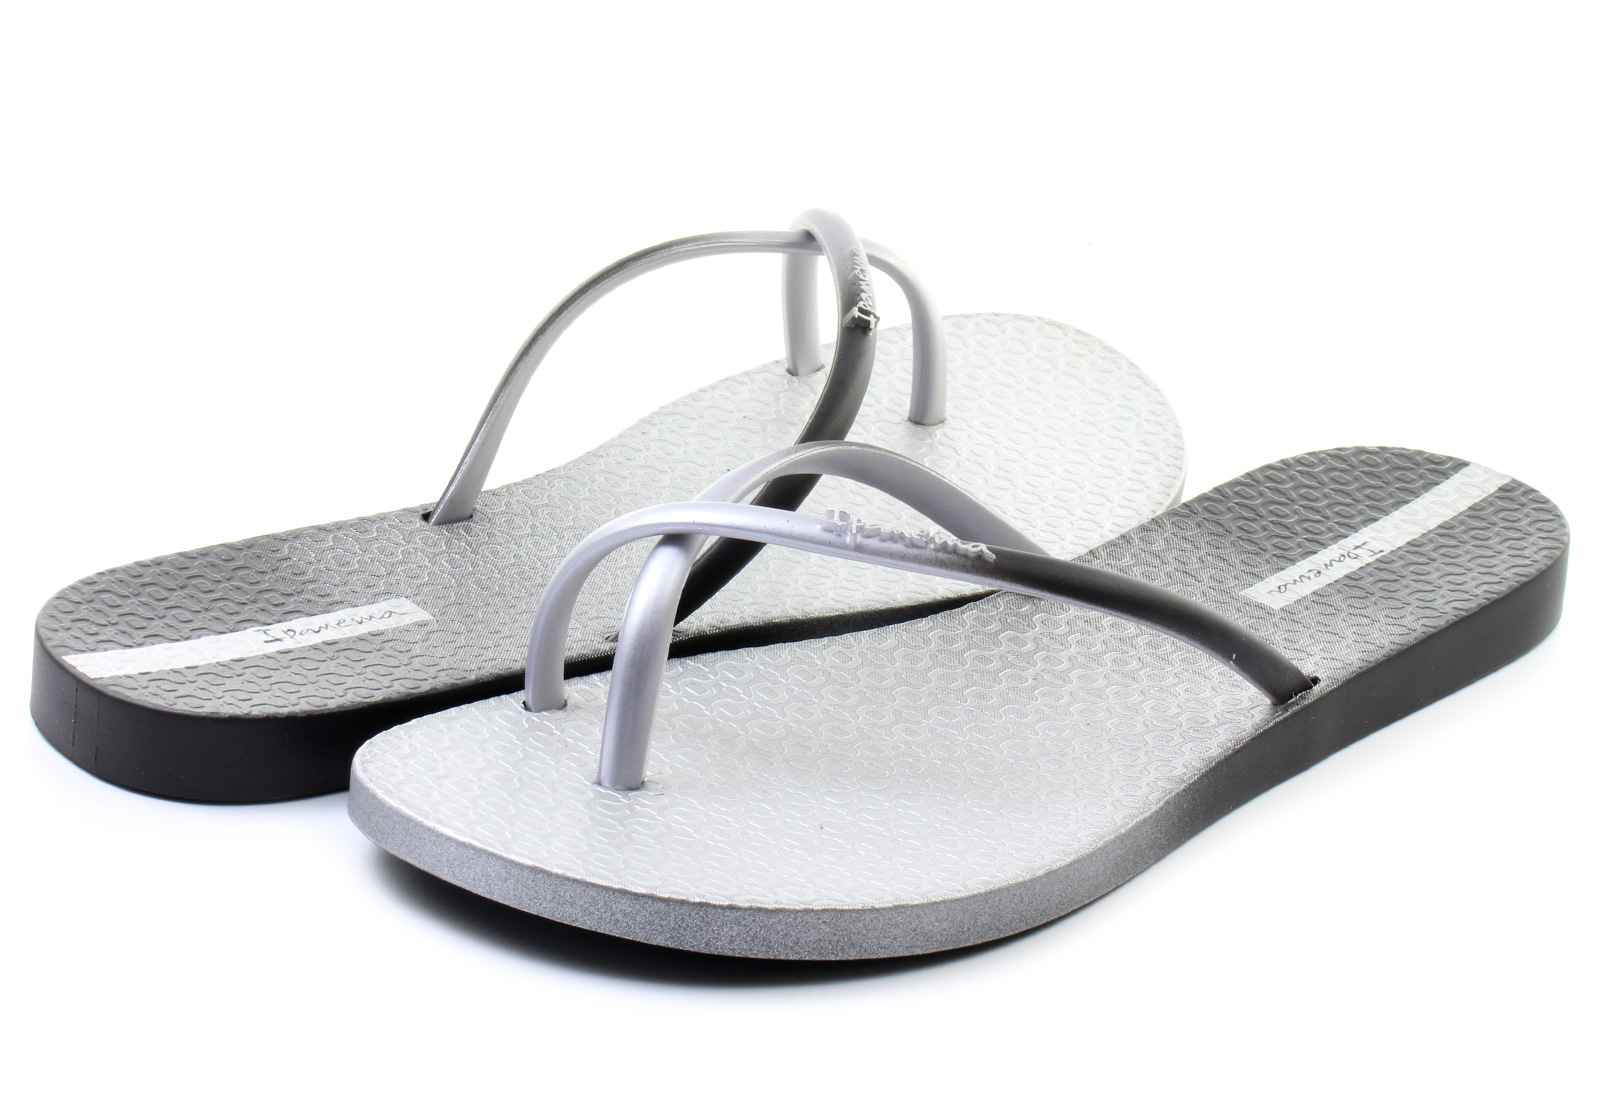 b8fcd09834a Ipanema Slippers - Fit Summer - 81564-23712 - Online shop for ...